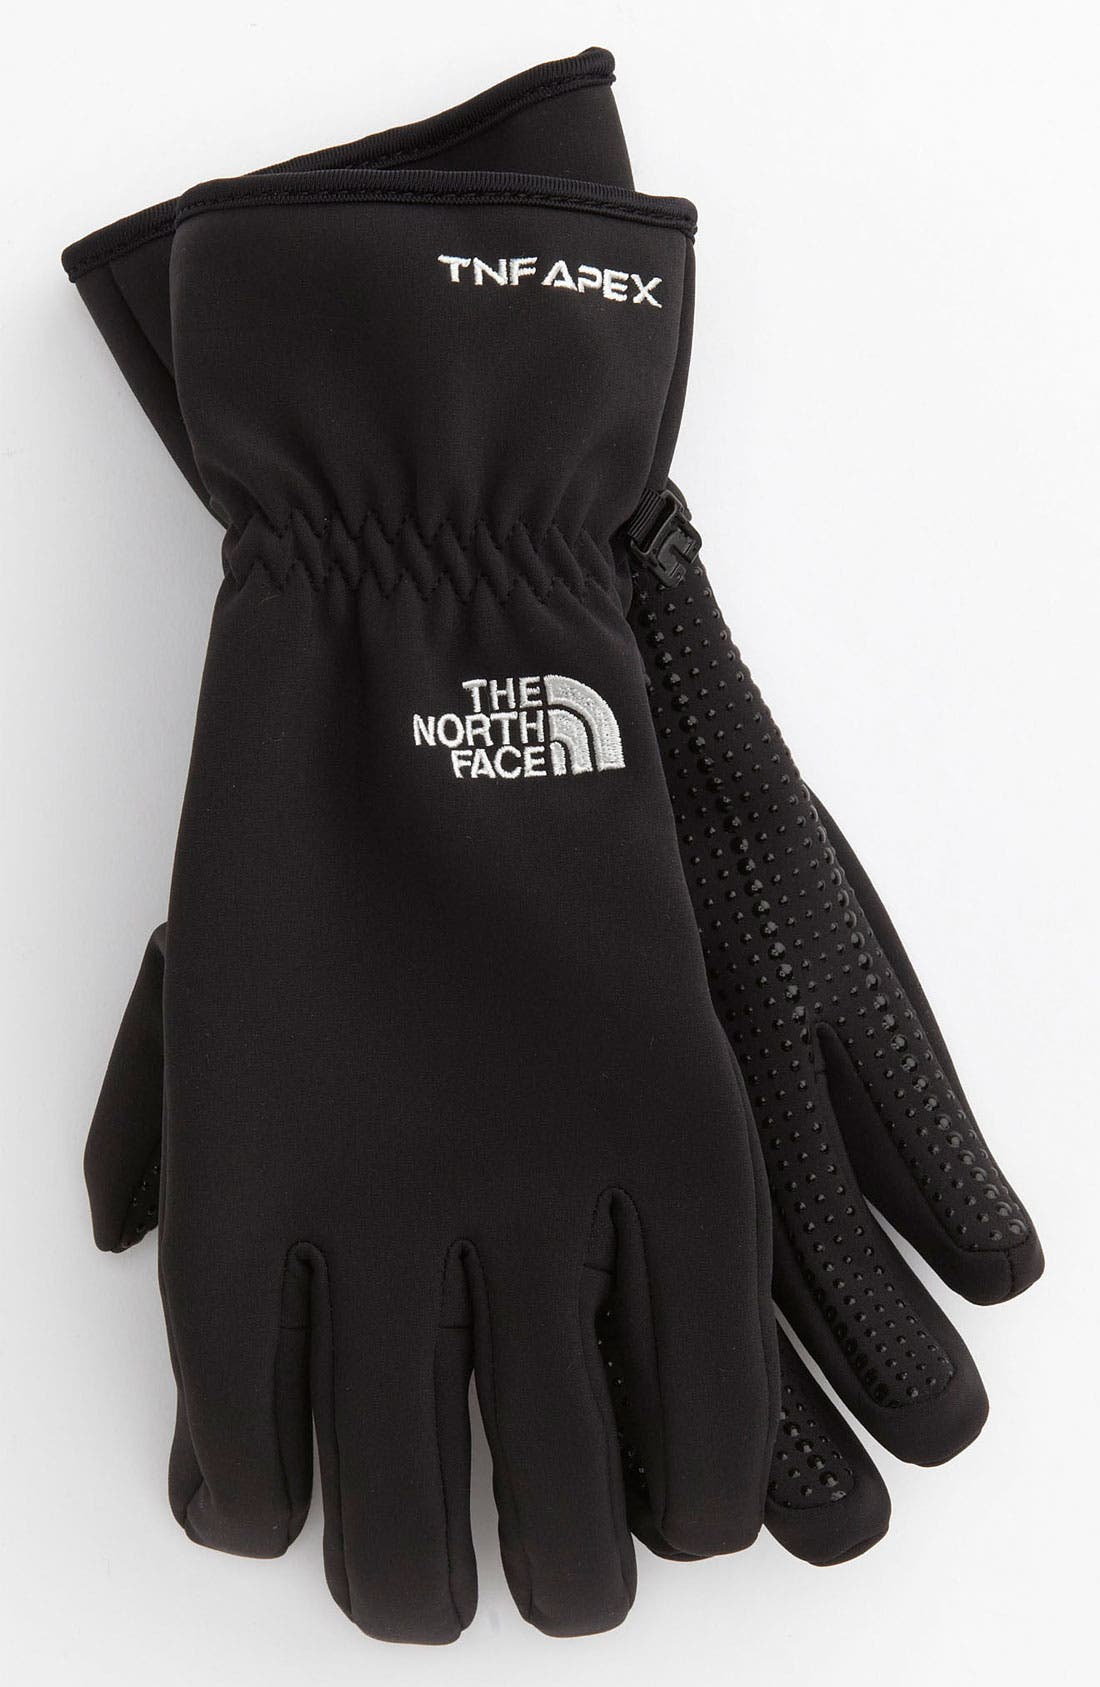 Alternate Image 1 Selected - The North Face 'Apex' Gloves